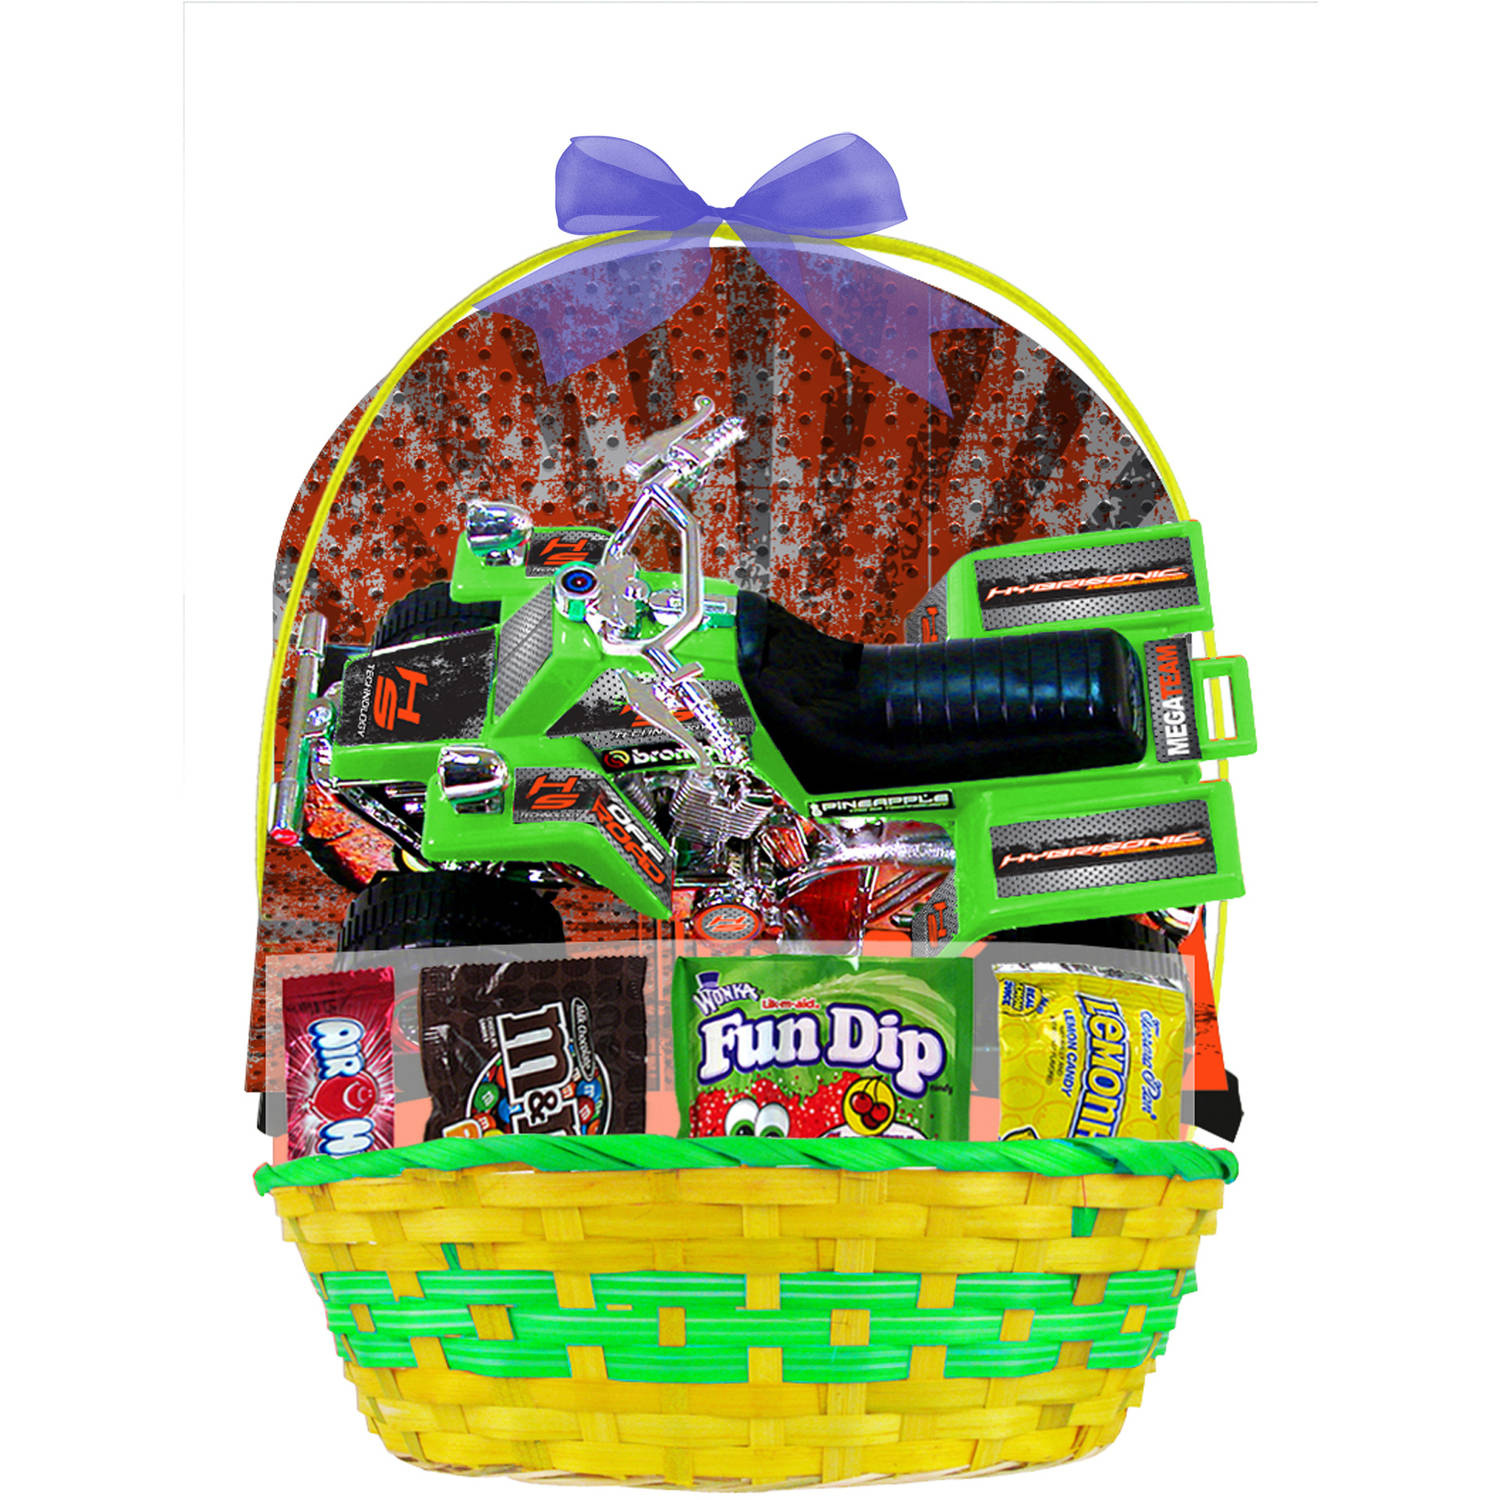 Easter Basket with ATV Vehicle & Candies